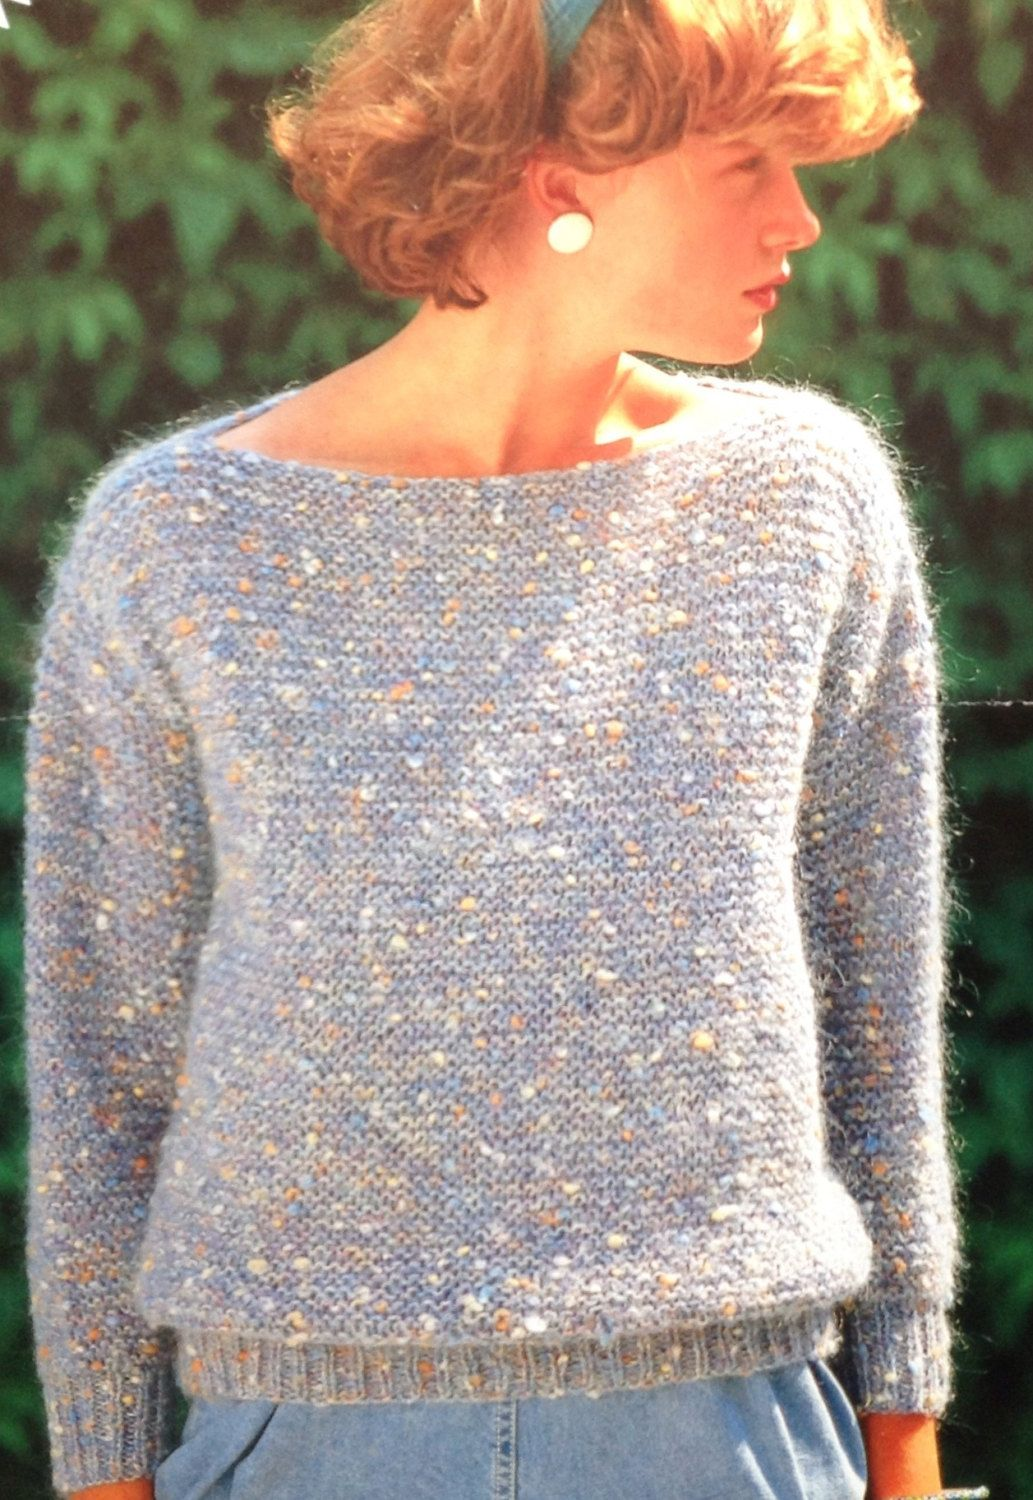 a3eb544f0df7f This is a copy of the Original Pattern for Instant Download Easy Garter  Stitch Knitting Pattern Girls Ladies Womens Sweater Jumper Boat Neck size  30-40in ...